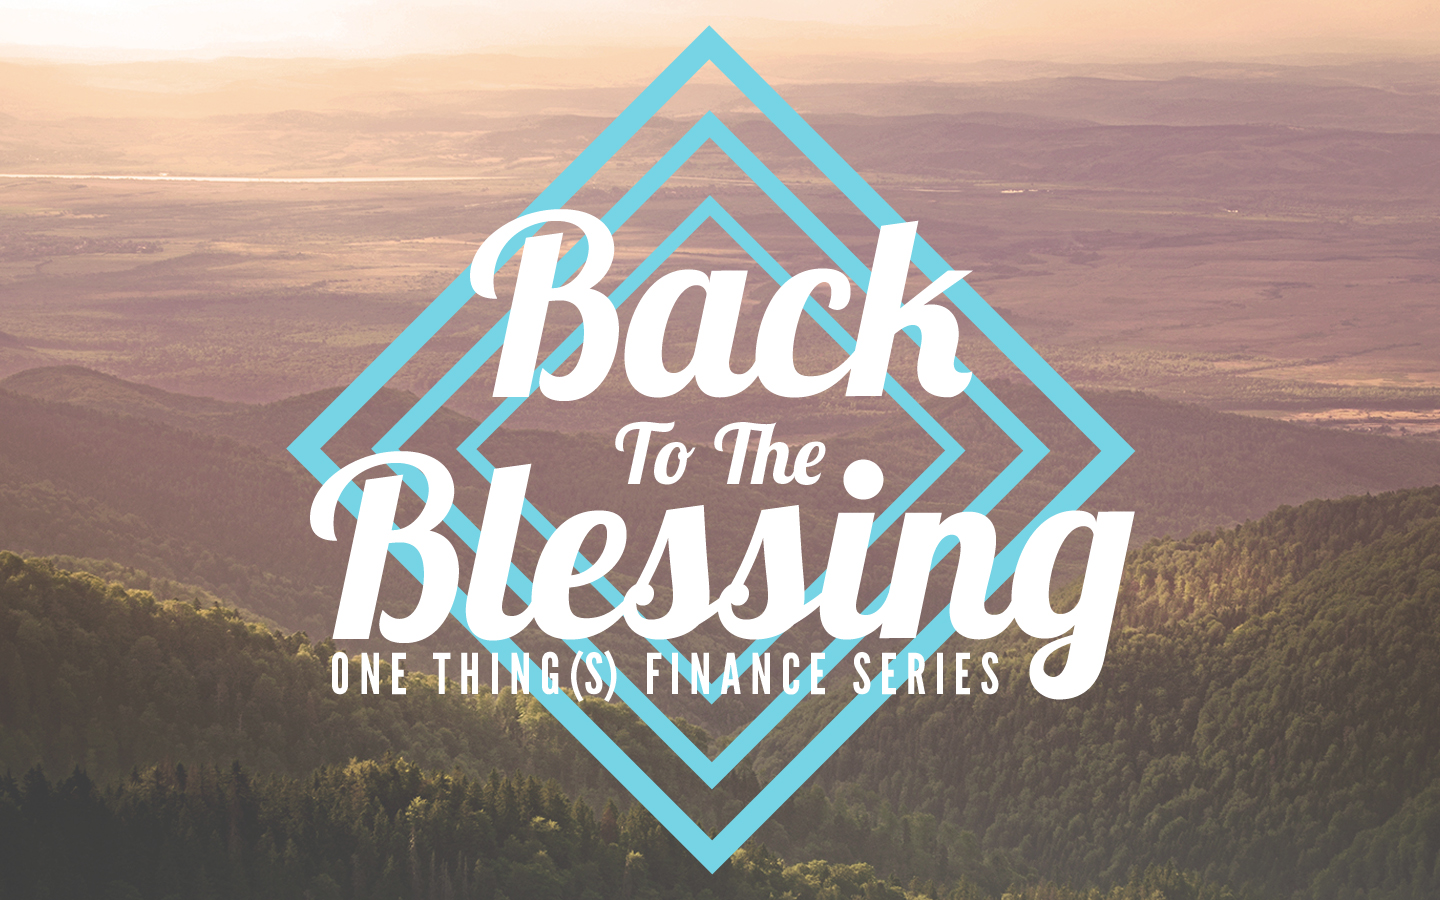 Back To The Blessing